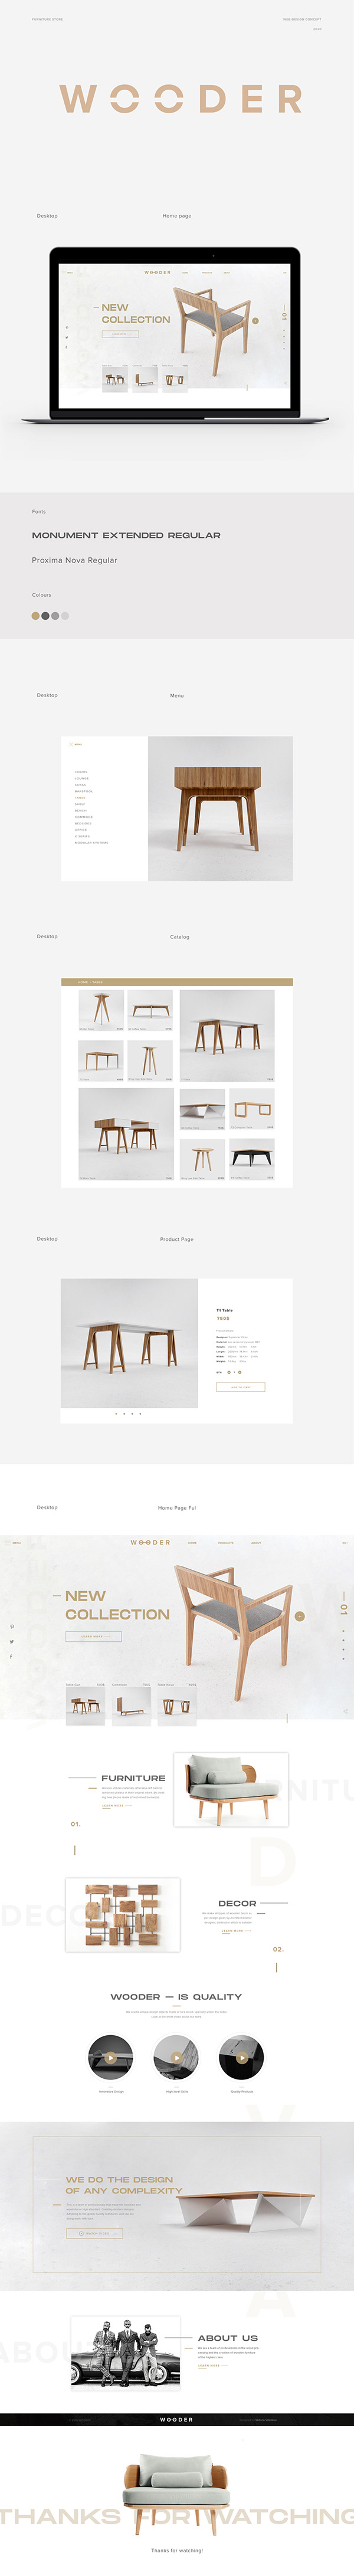 Wooder. Furniture Store Concept